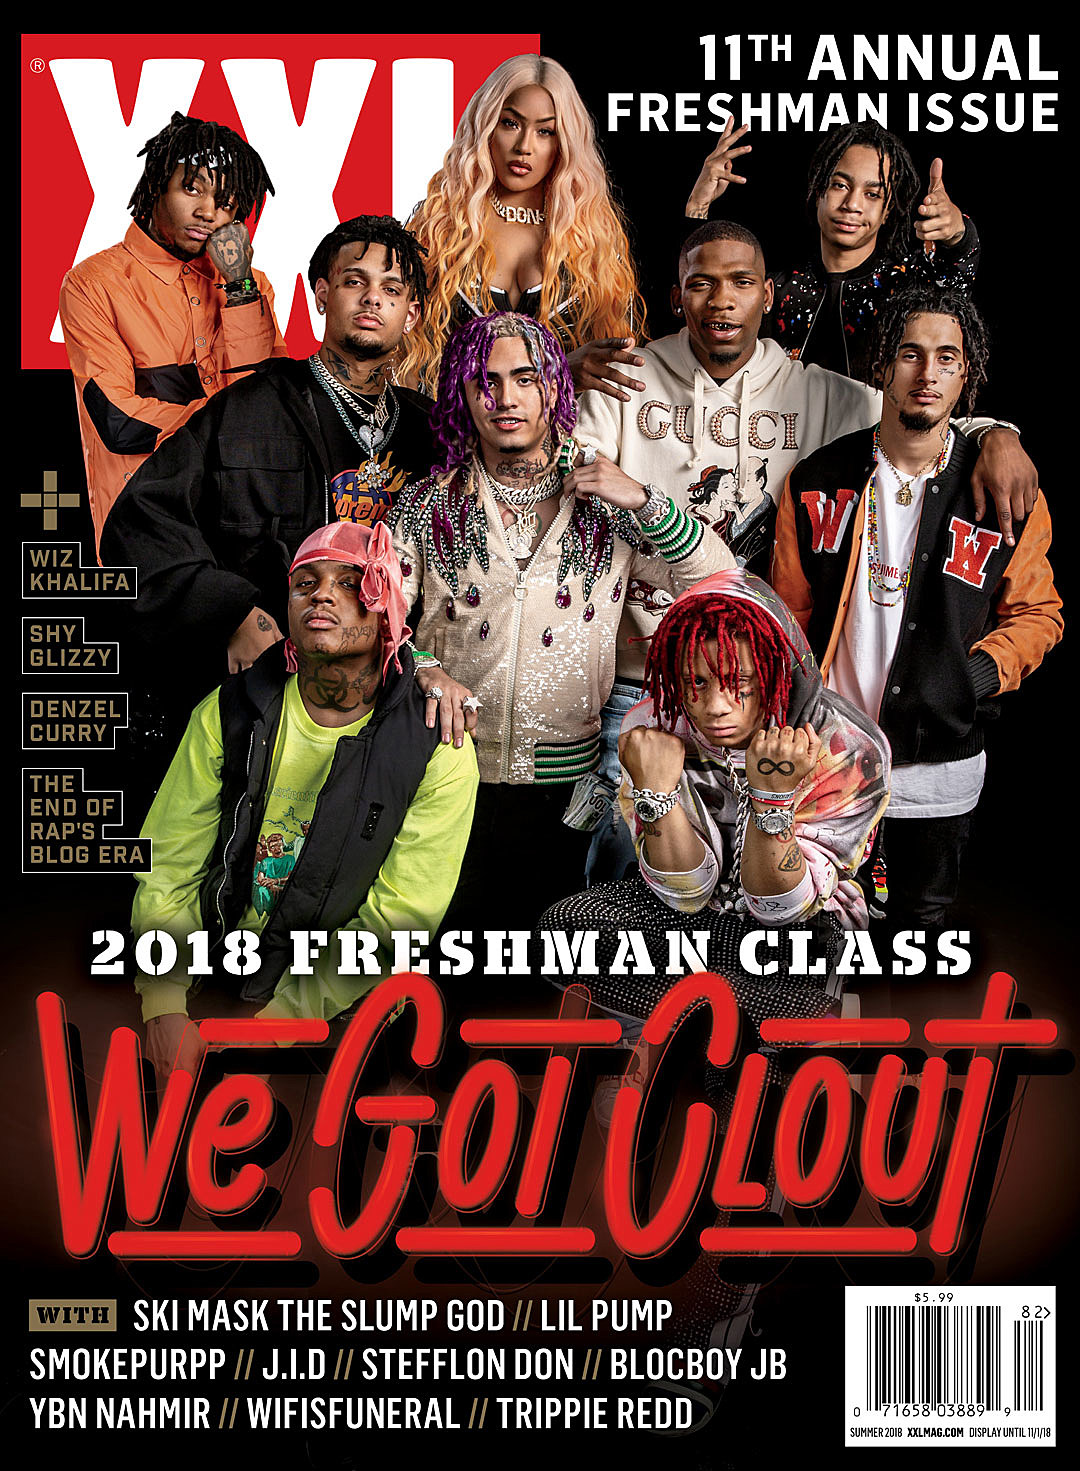 Xxl reveals 2018 freshman class after a few leaks xxl finally reveals their 2018 freshman class and yes this years annual list could be looked as having an abundance of face tats malvernweather Choice Image